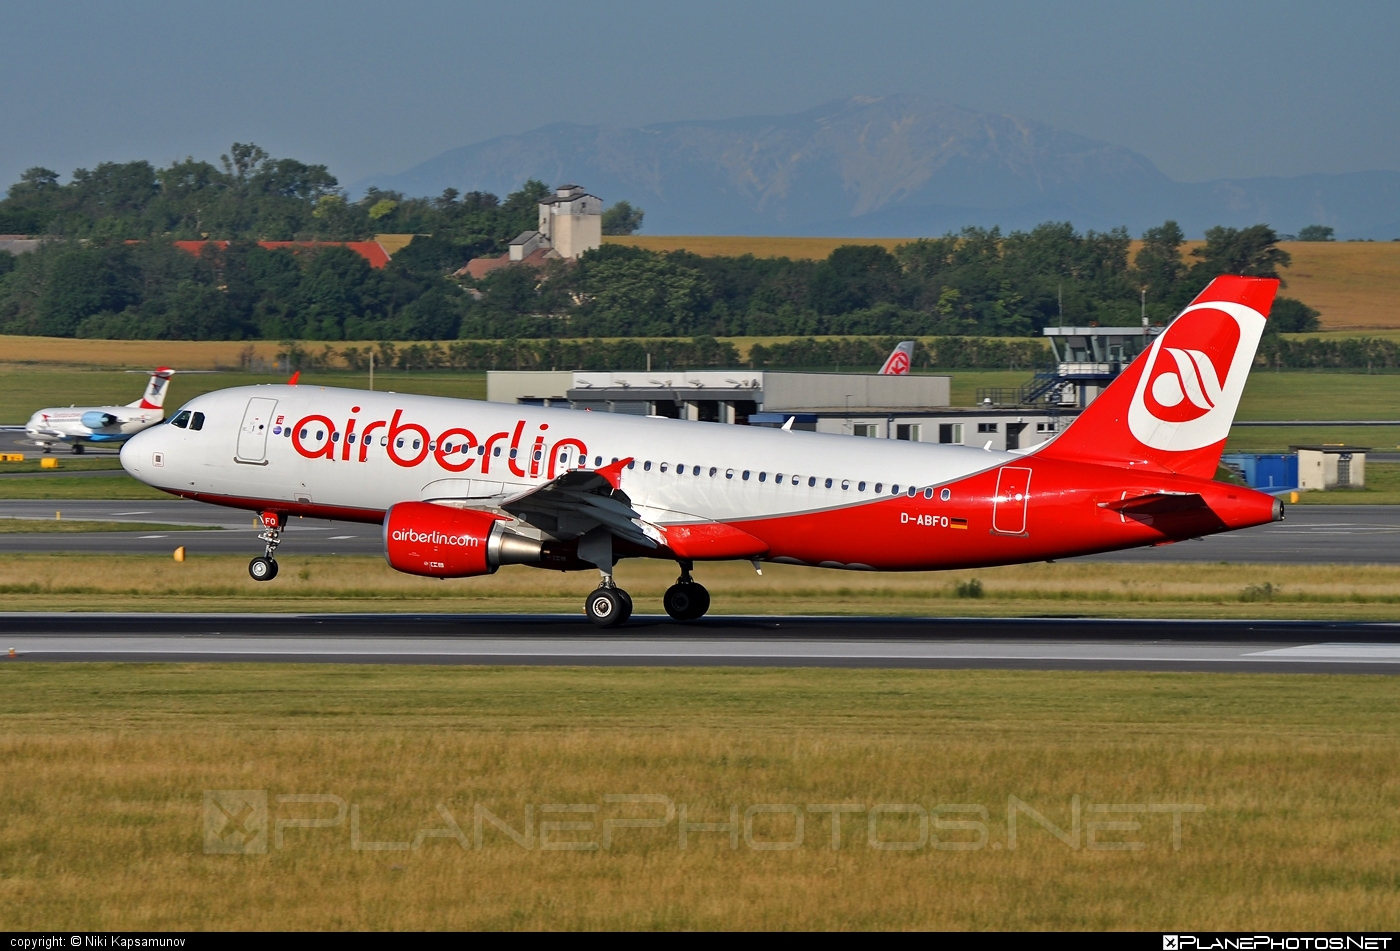 Airbus A320-214 - D-ABFO operated by Air Berlin #a320 #a320family #airberlin #airbus #airbus320